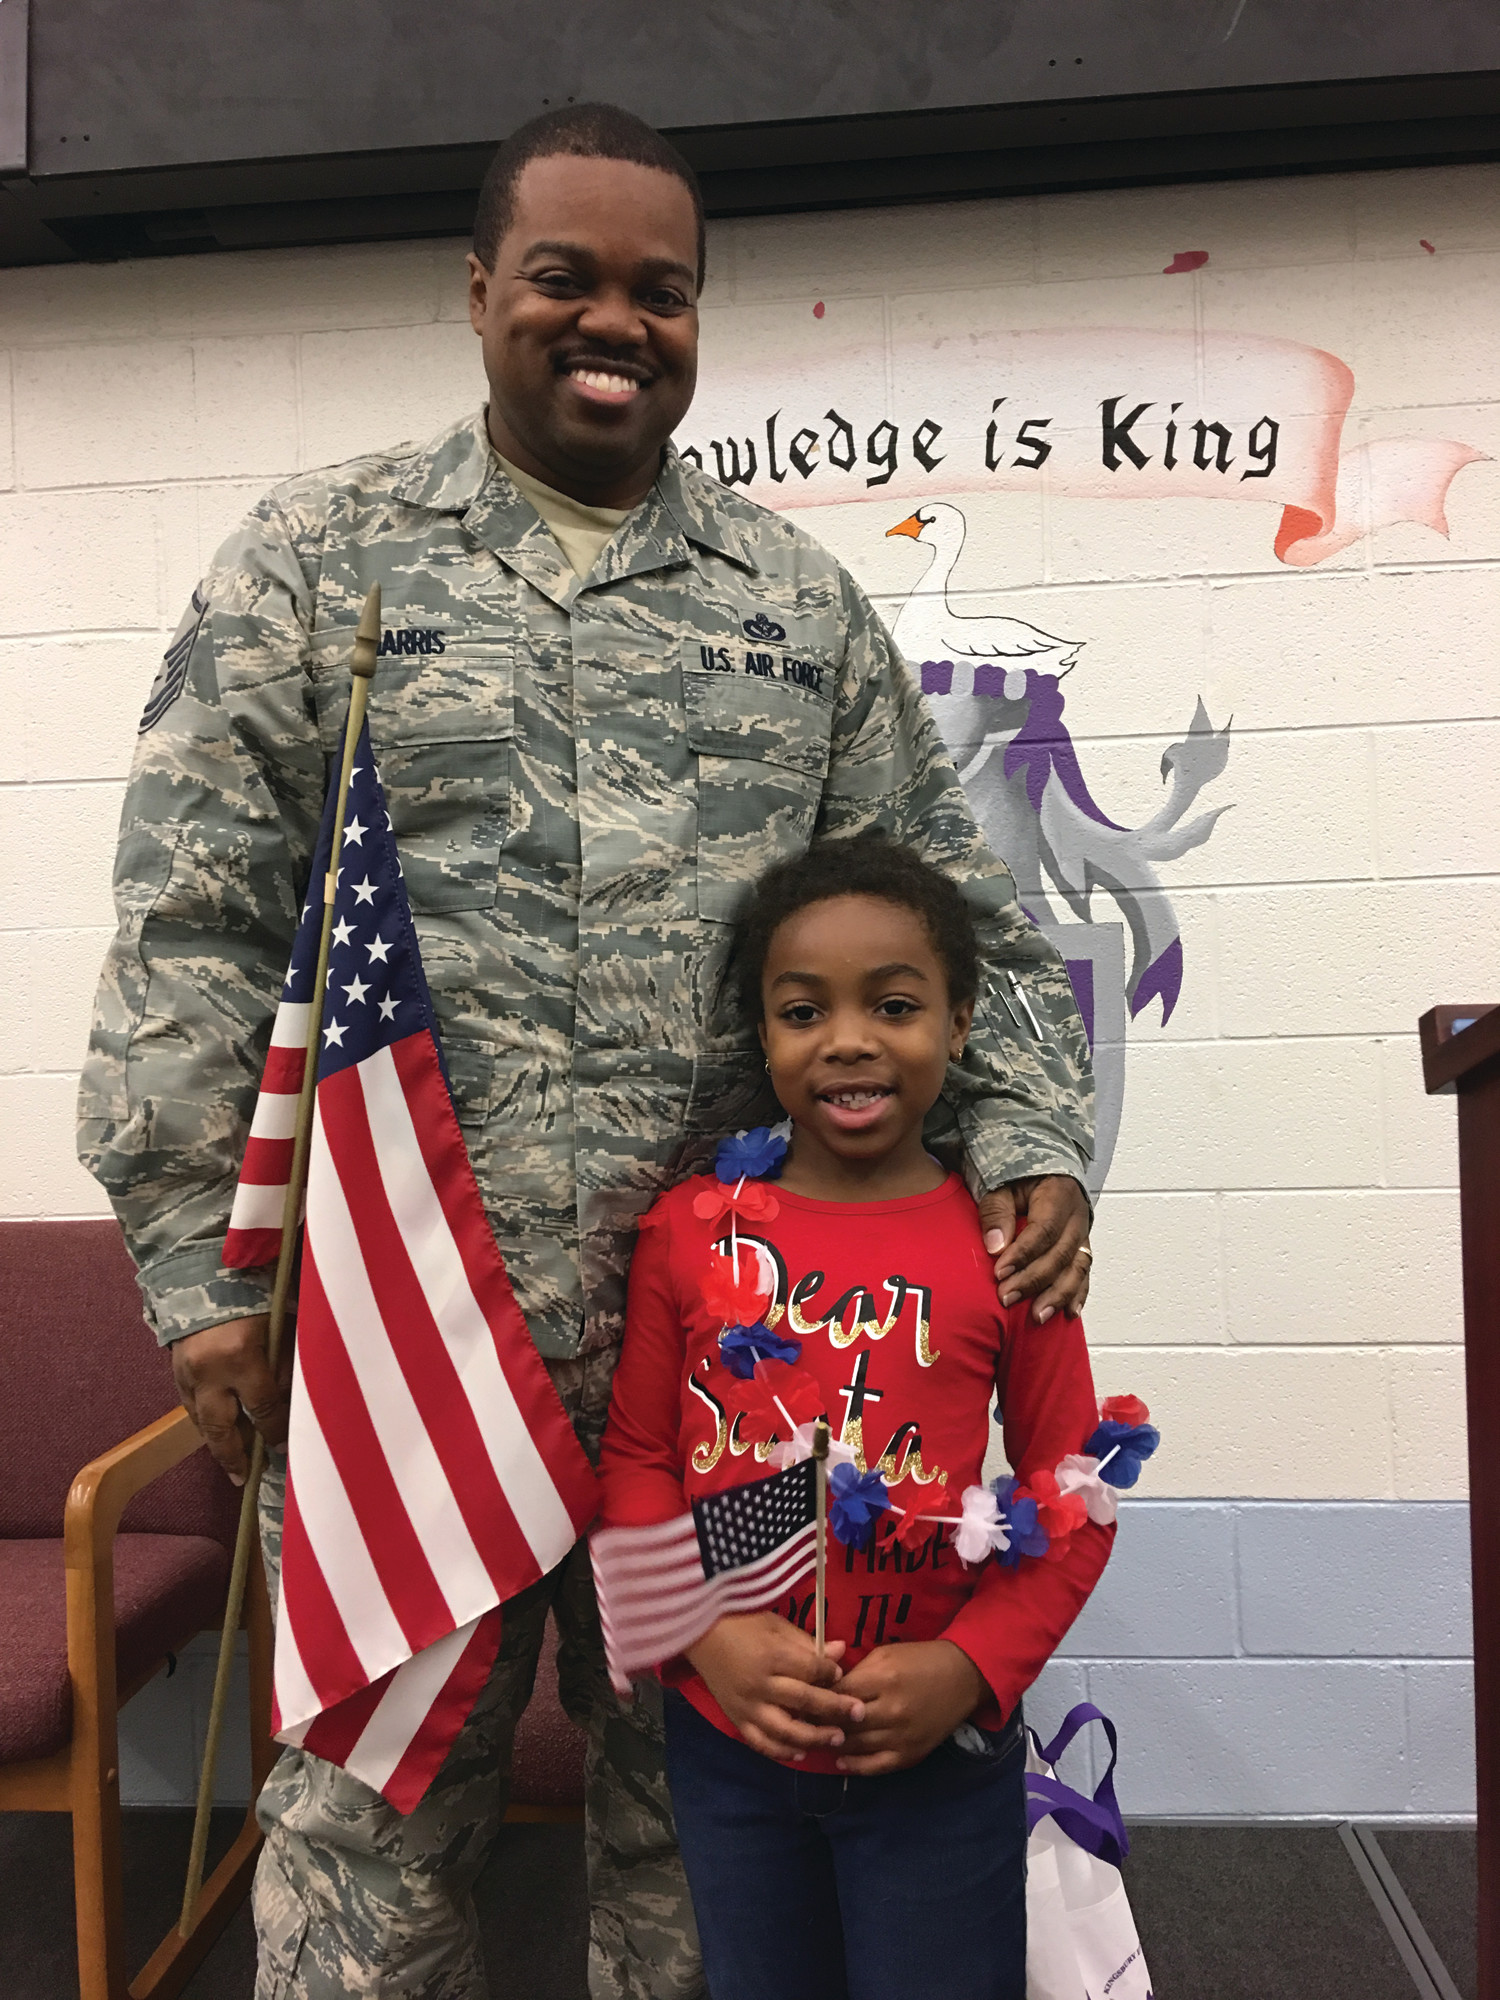 Kingsbury Elementary School student Nevaih Harris is seen with her dad, Master Sgt. Thomas Harris, who was the guest speaker at the school's Veterans Day program. Harris recently returned home from 